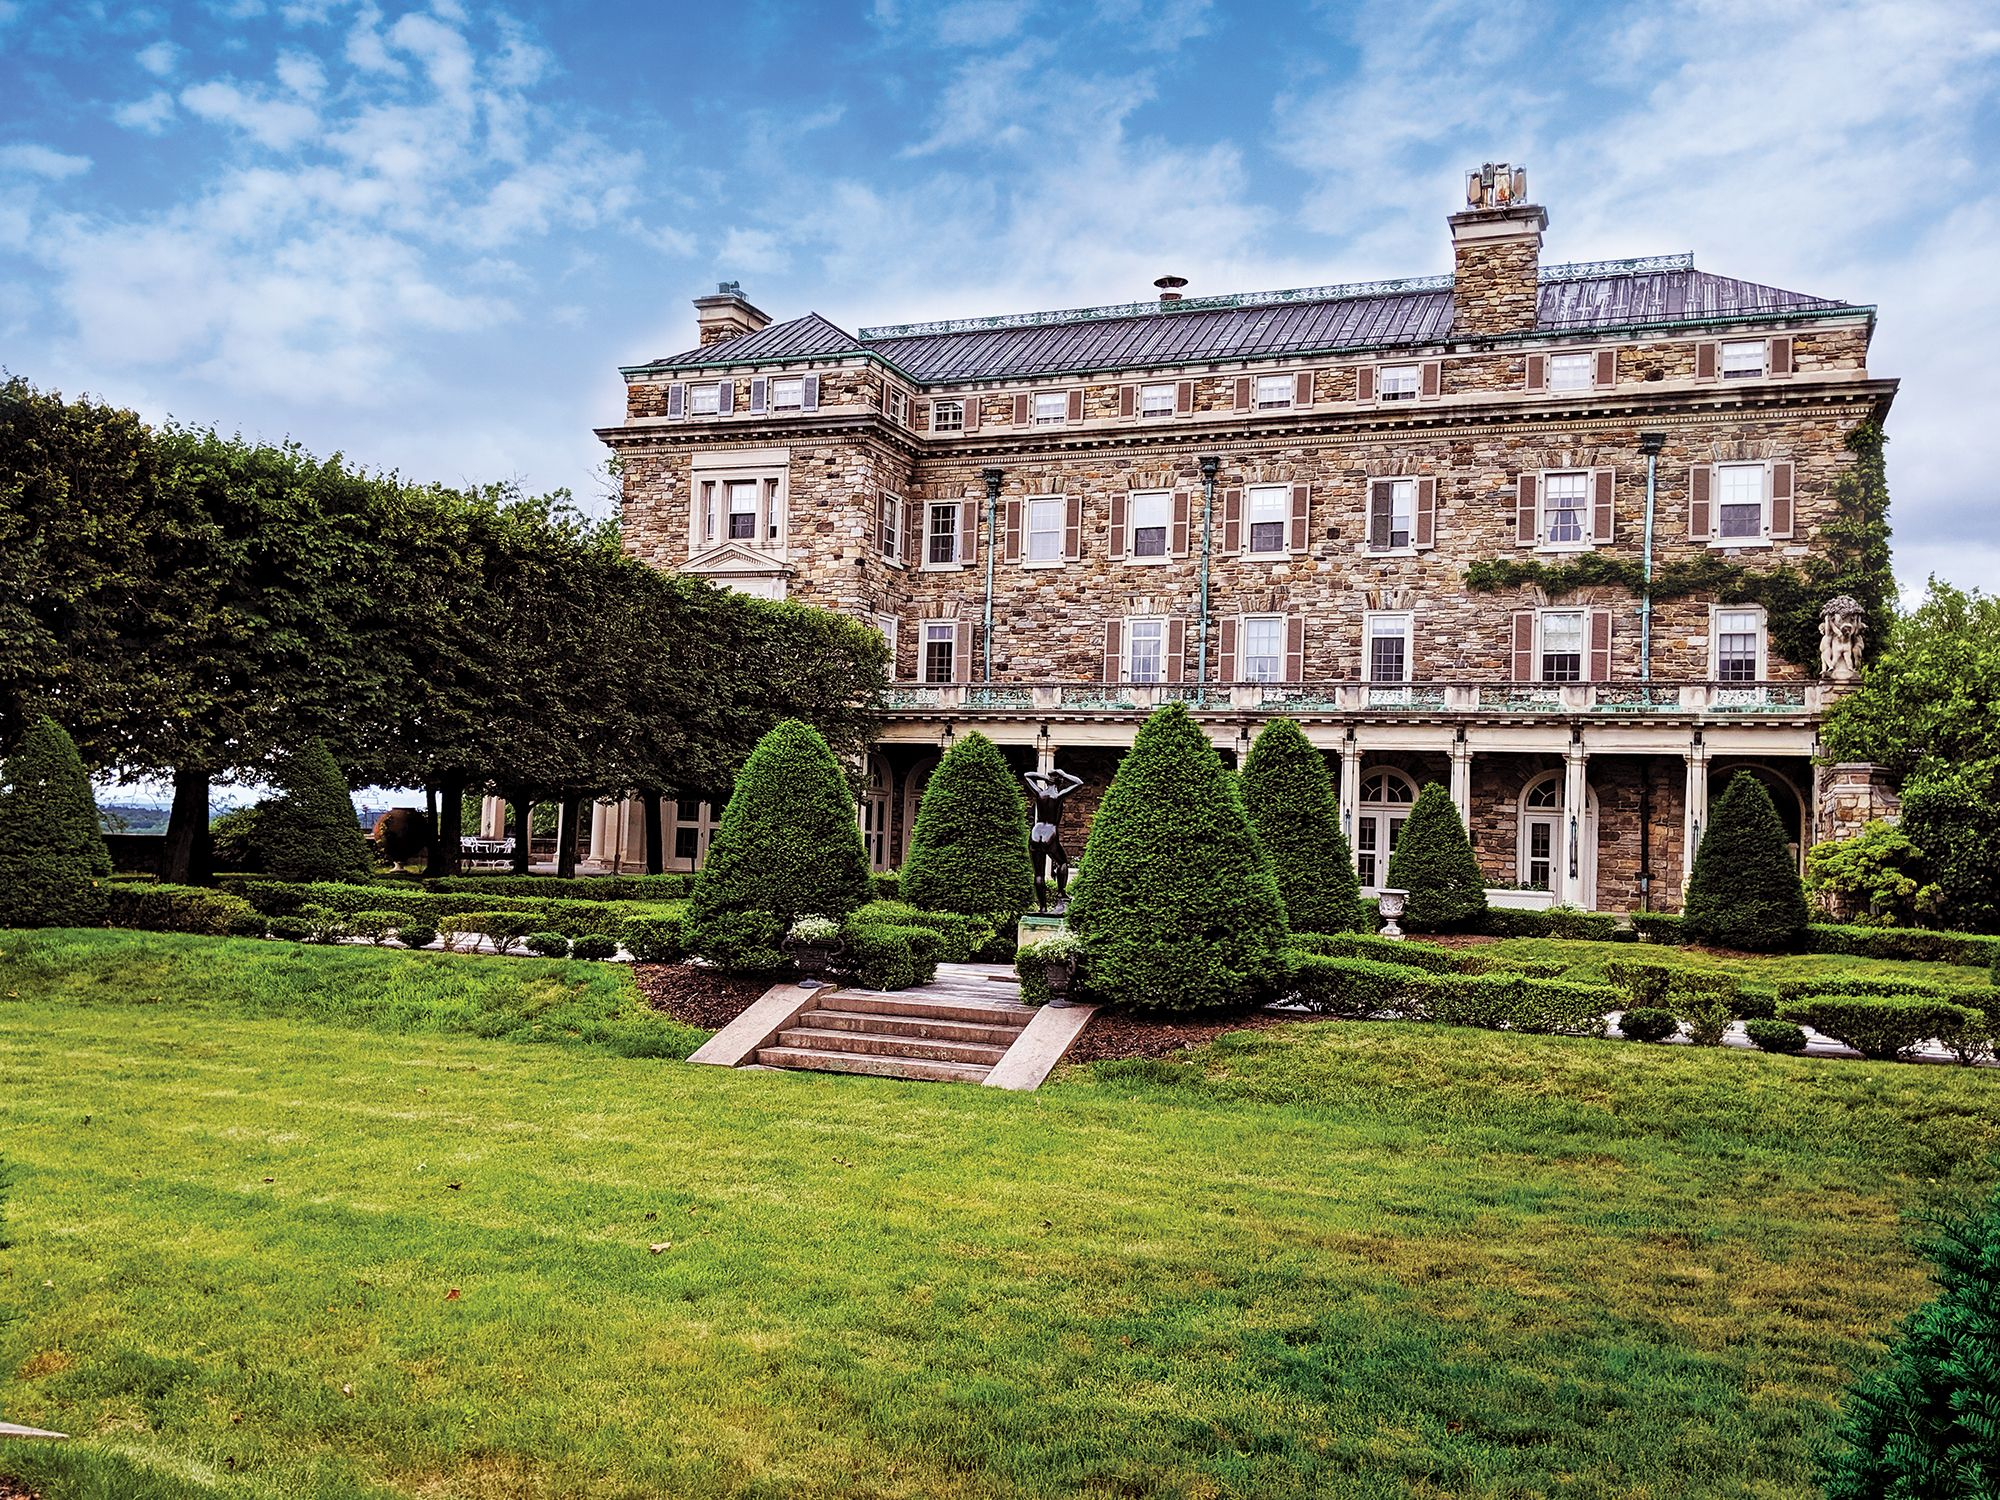 Home Tour: One Of The Most Splendid Mansions In Hudson Valley, New York